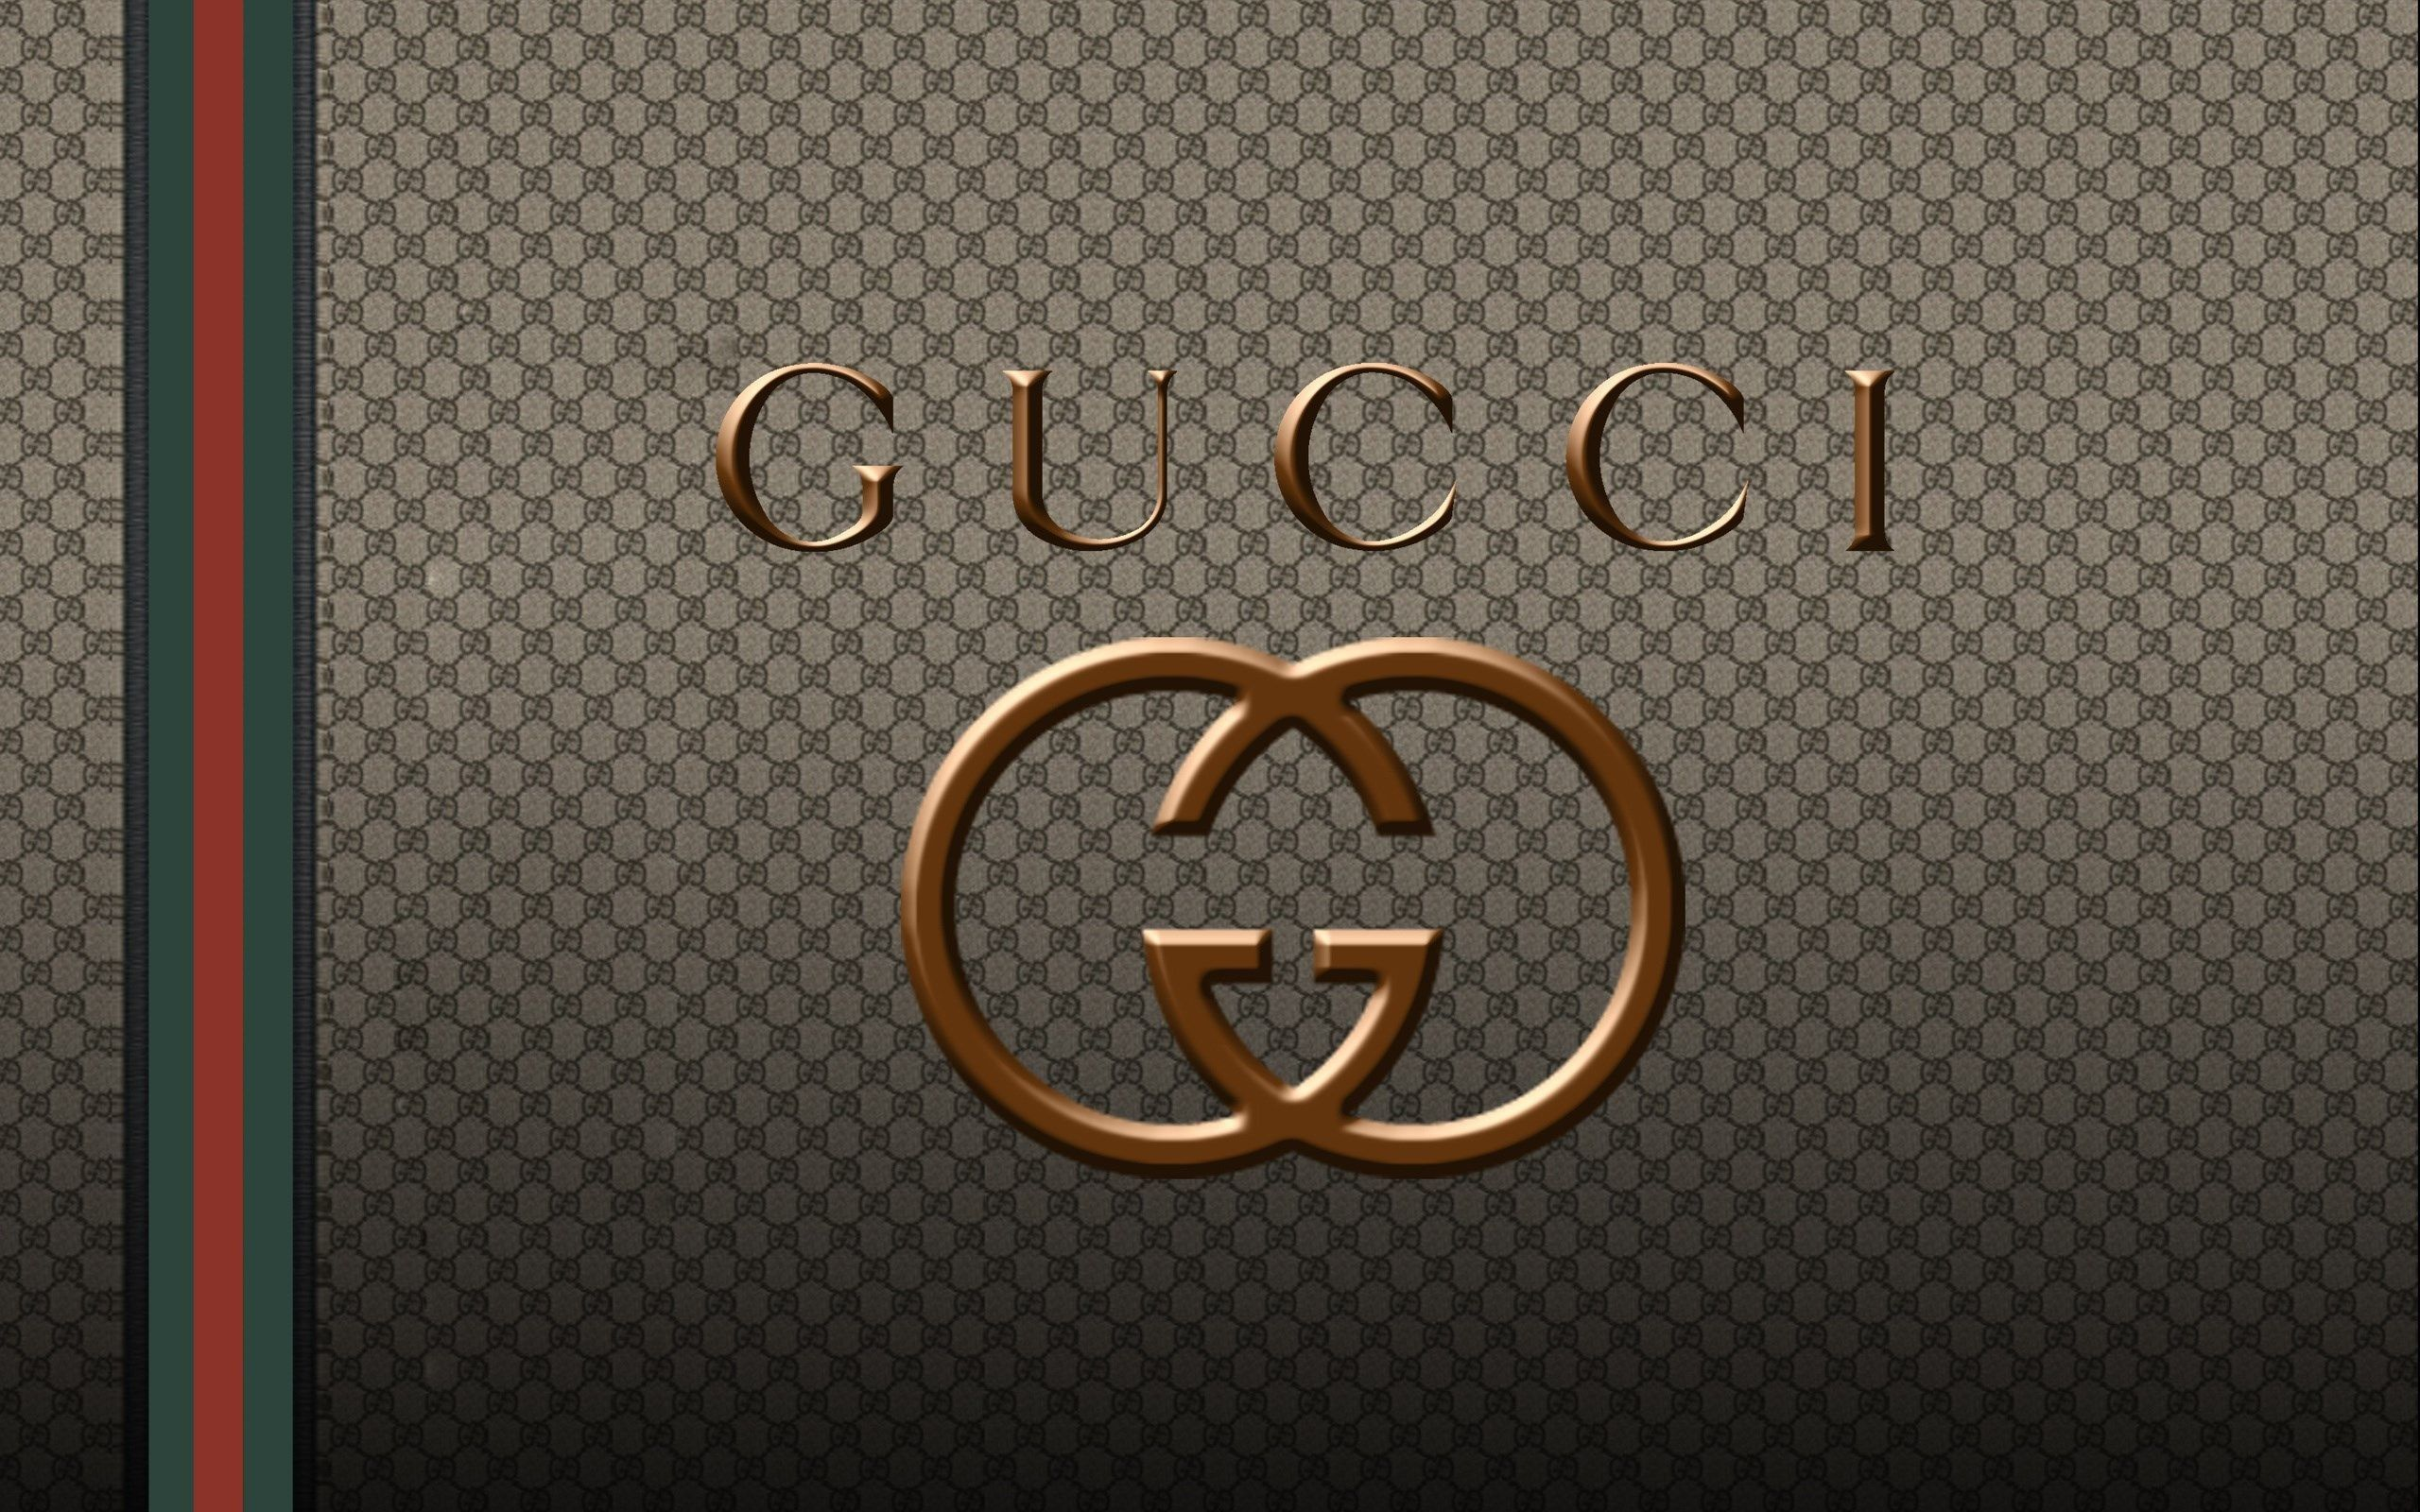 2560x1600 Gucci Logo Wallpapers (84+ background pictures)